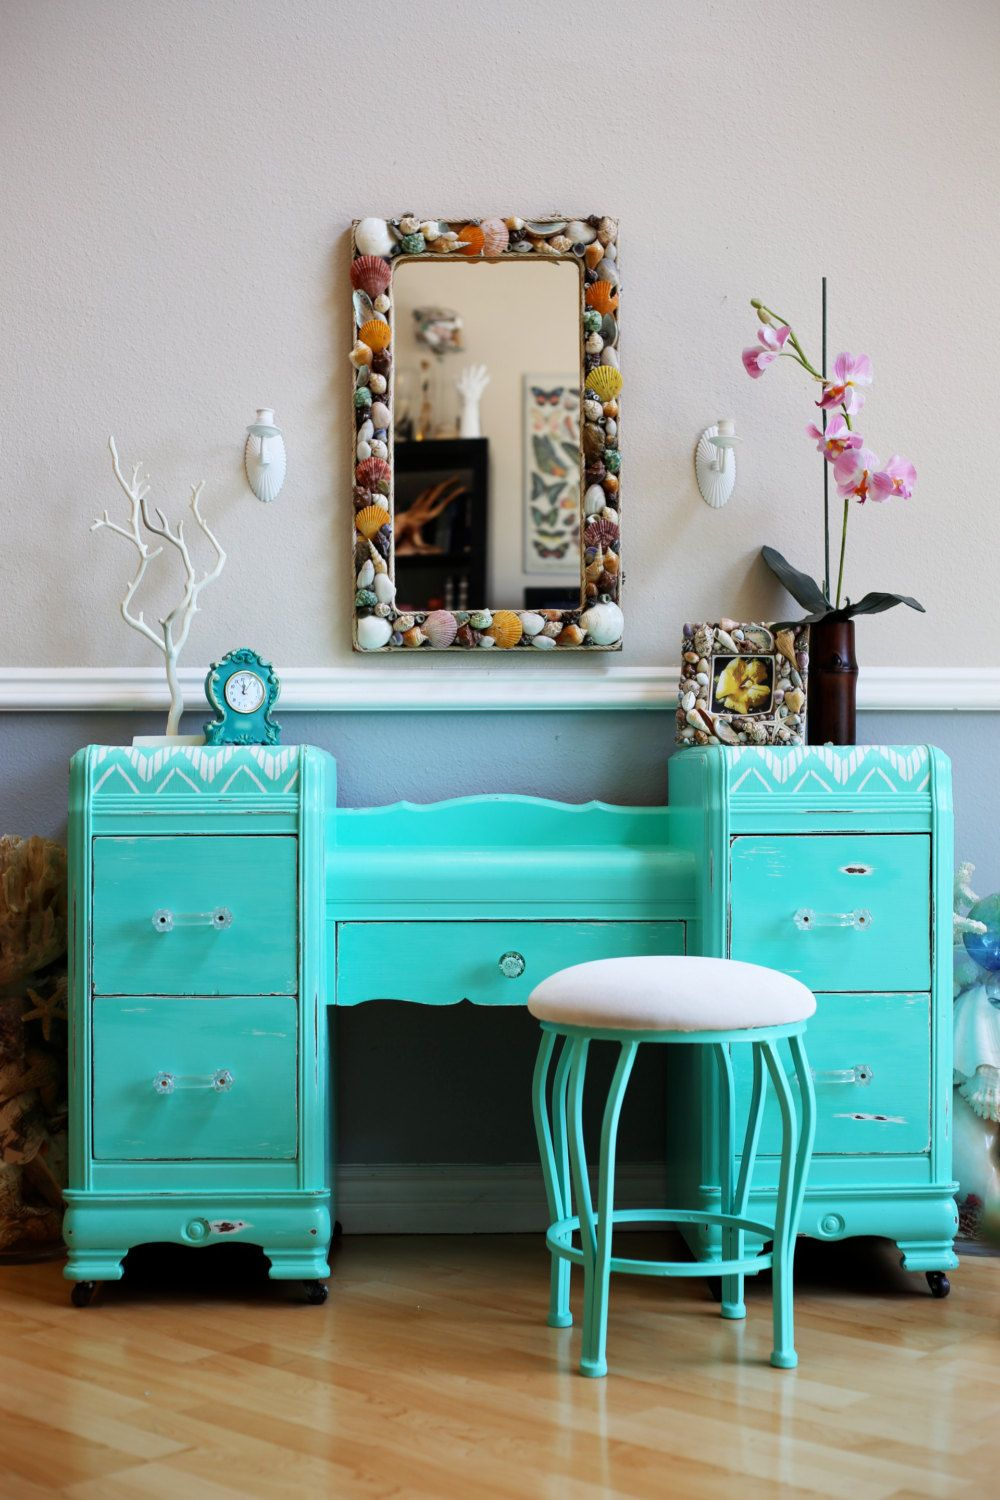 Sold contact for custom piece beachy mint turquoise vanity table mint turquoise vanity table by peaceandpoetry on etsy 58000 too pricey but i want it geotapseo Images